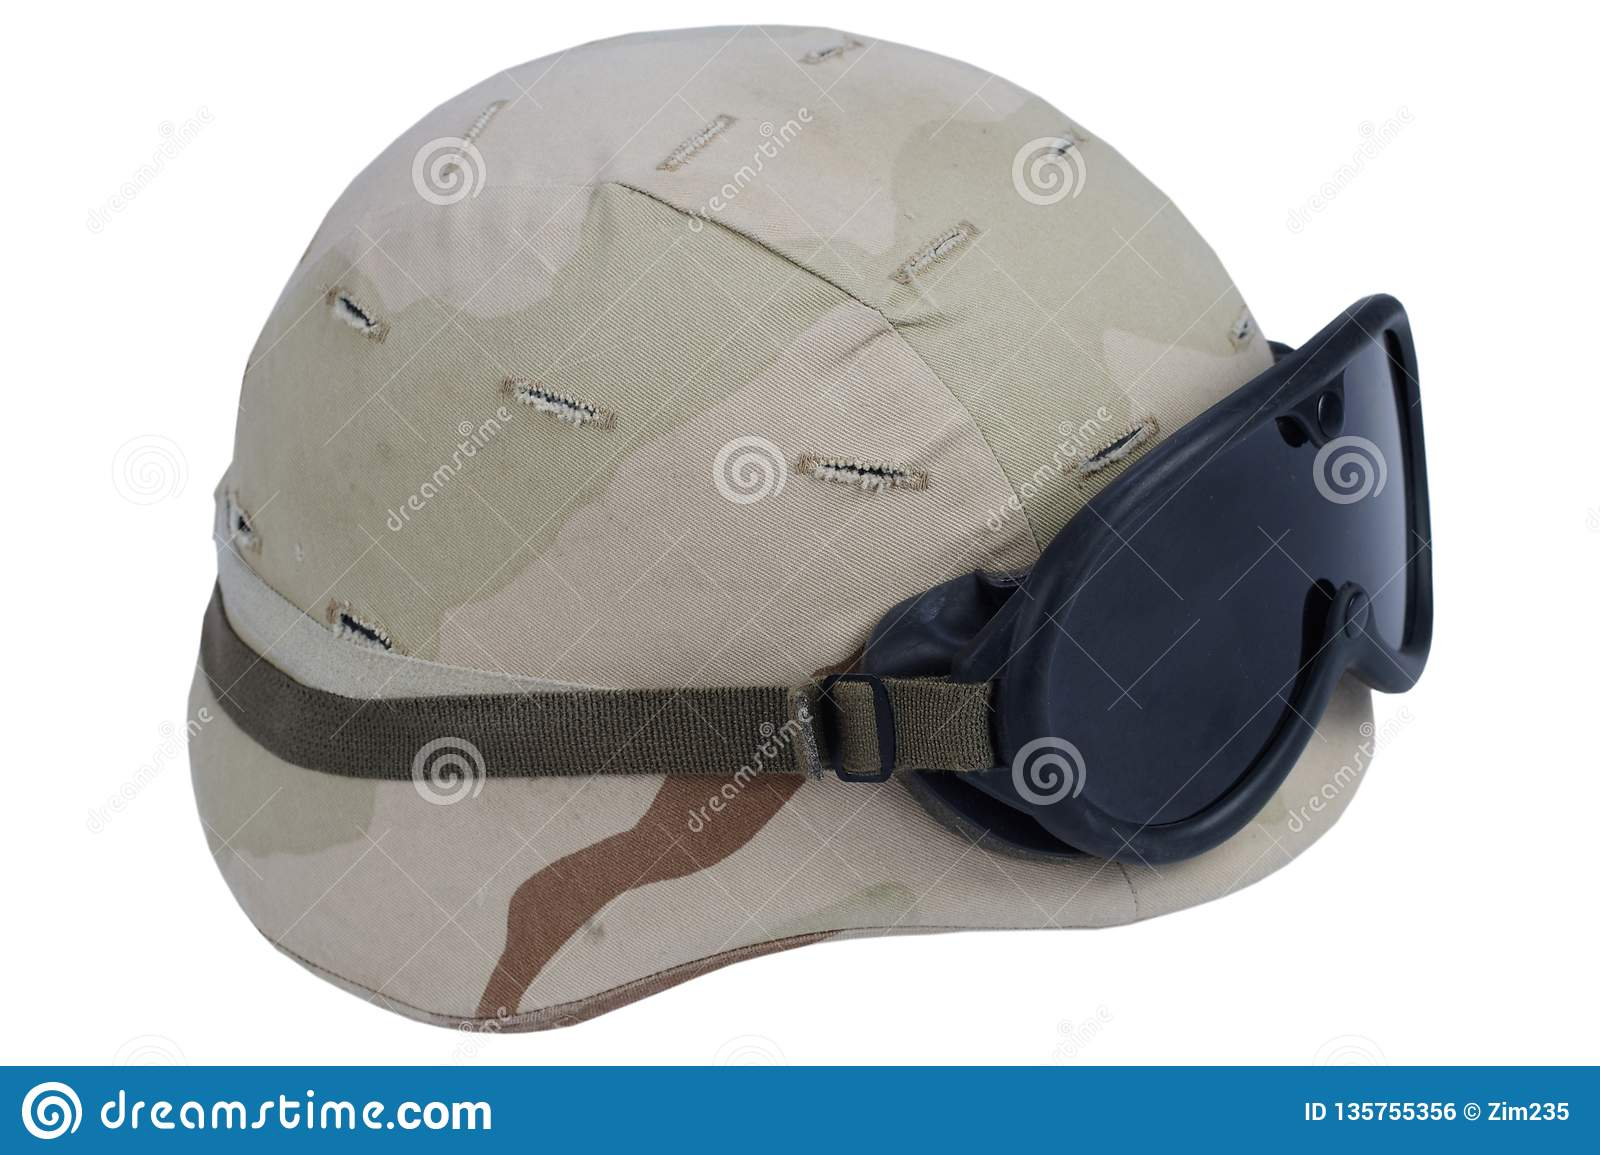 98779f1949e35c army kevlar helmet with goggles and camoflage cover isolated on white  background. More similar stock images